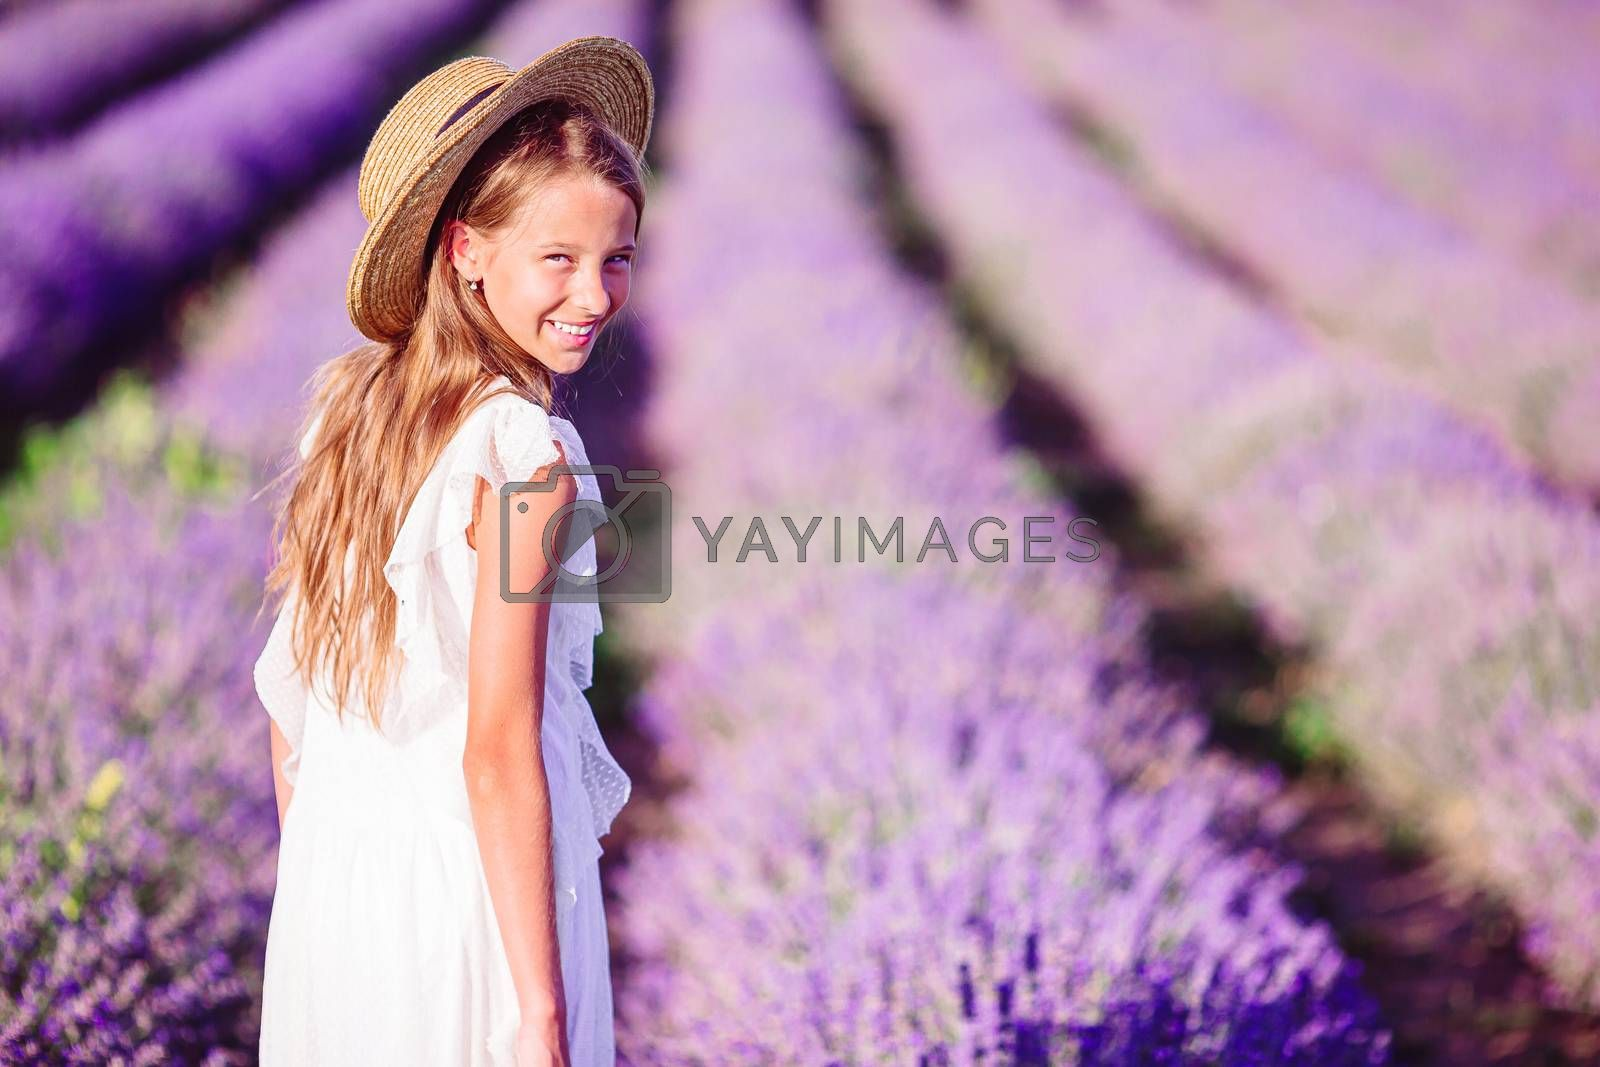 Little adorable girl in lavender flowers field in white dress and hat